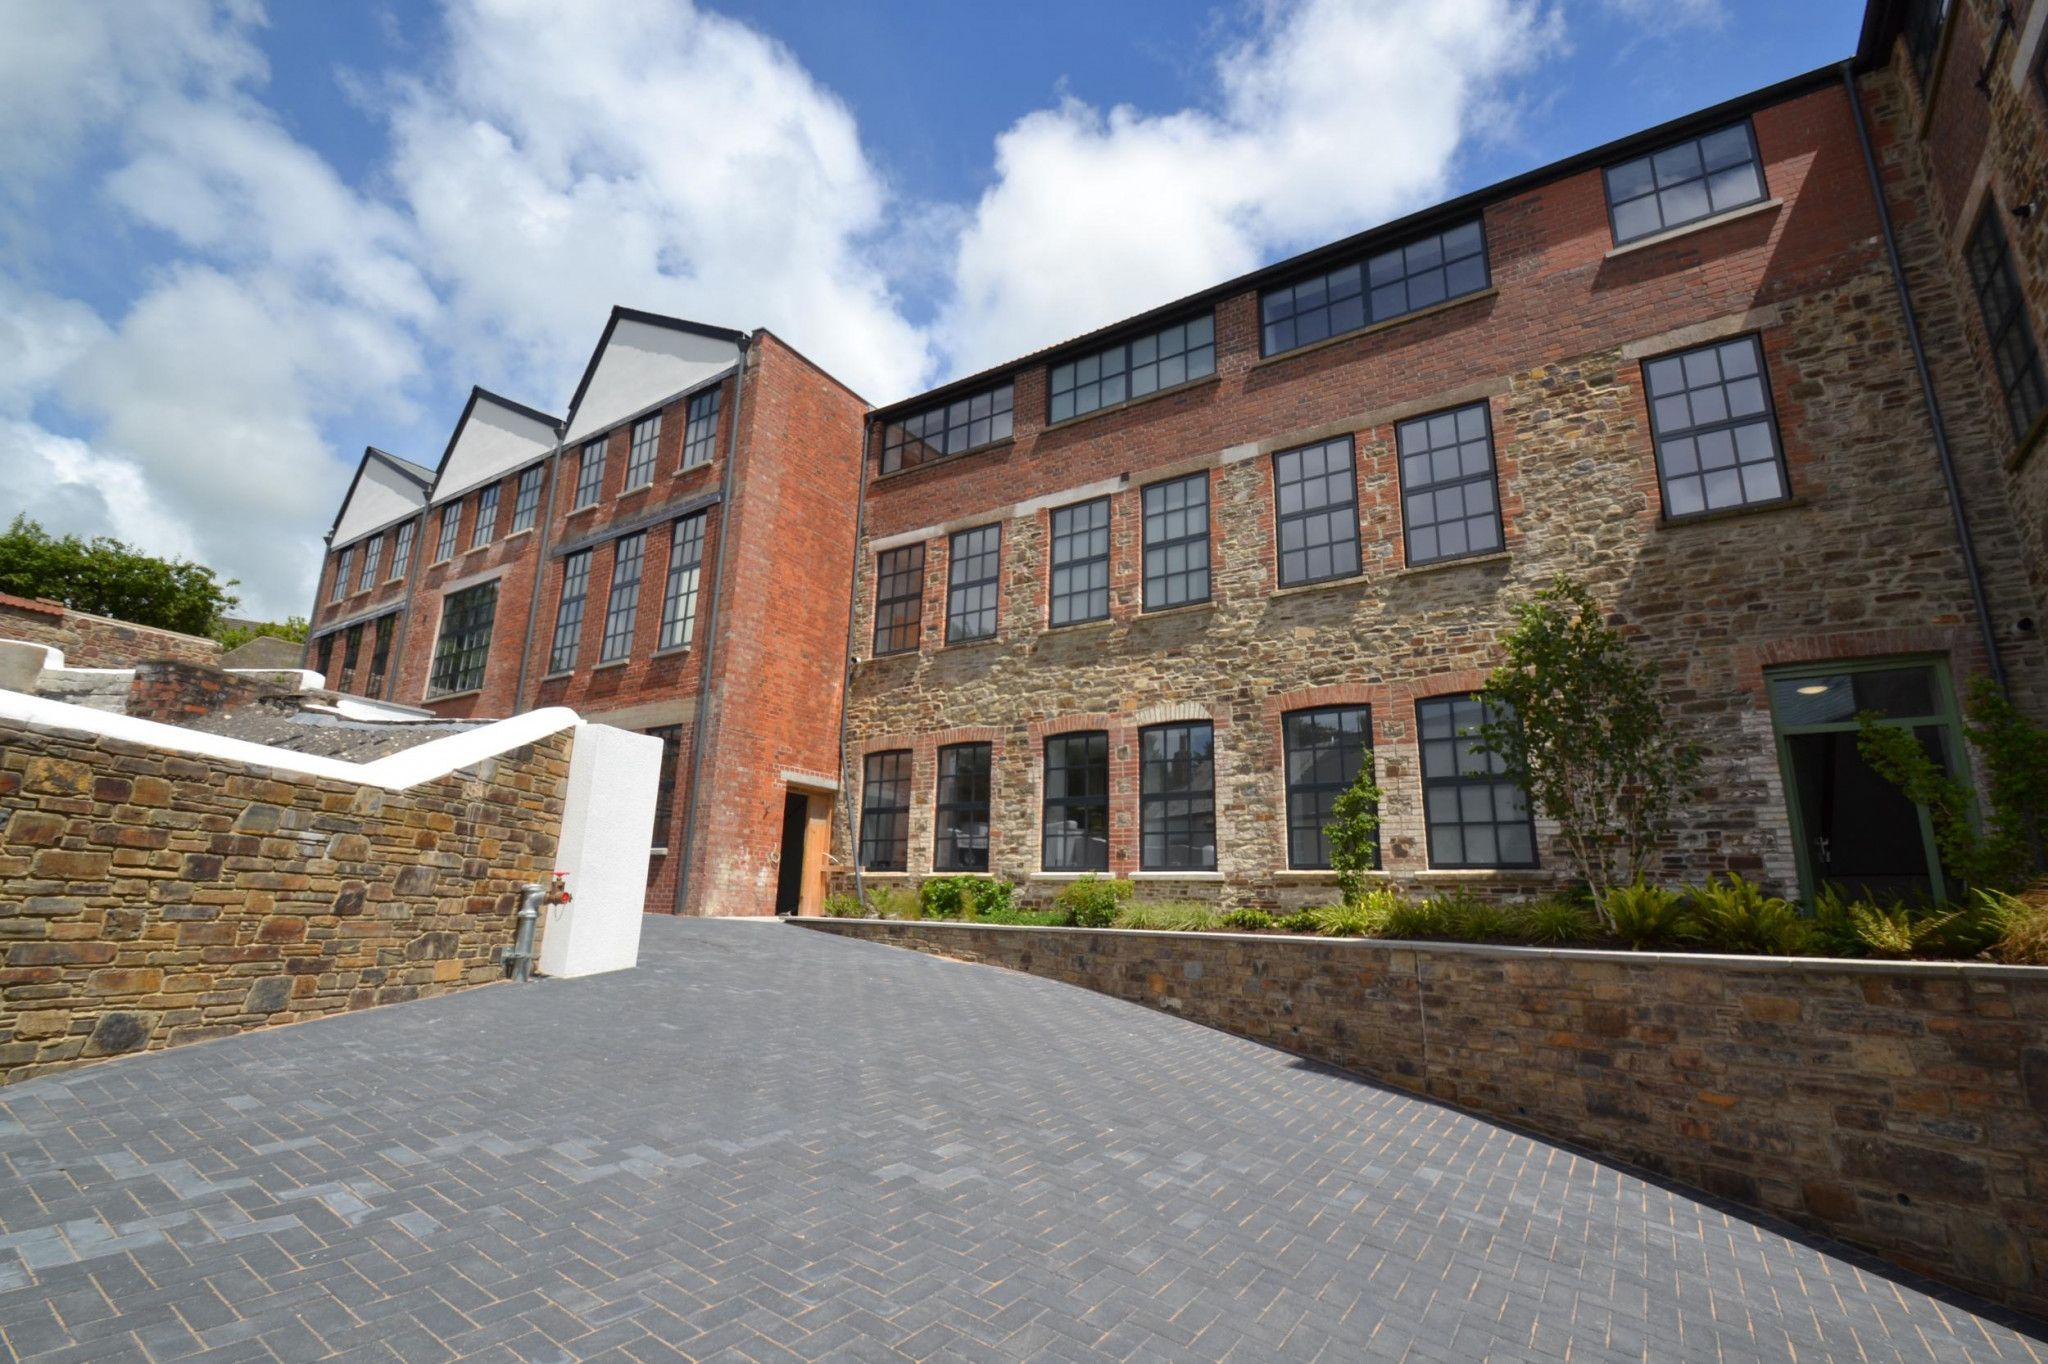 Open House  SATURDAY 29th JULY 10 am to 1pm, The old Glove Factory, Barnstaple - EX31 1QS